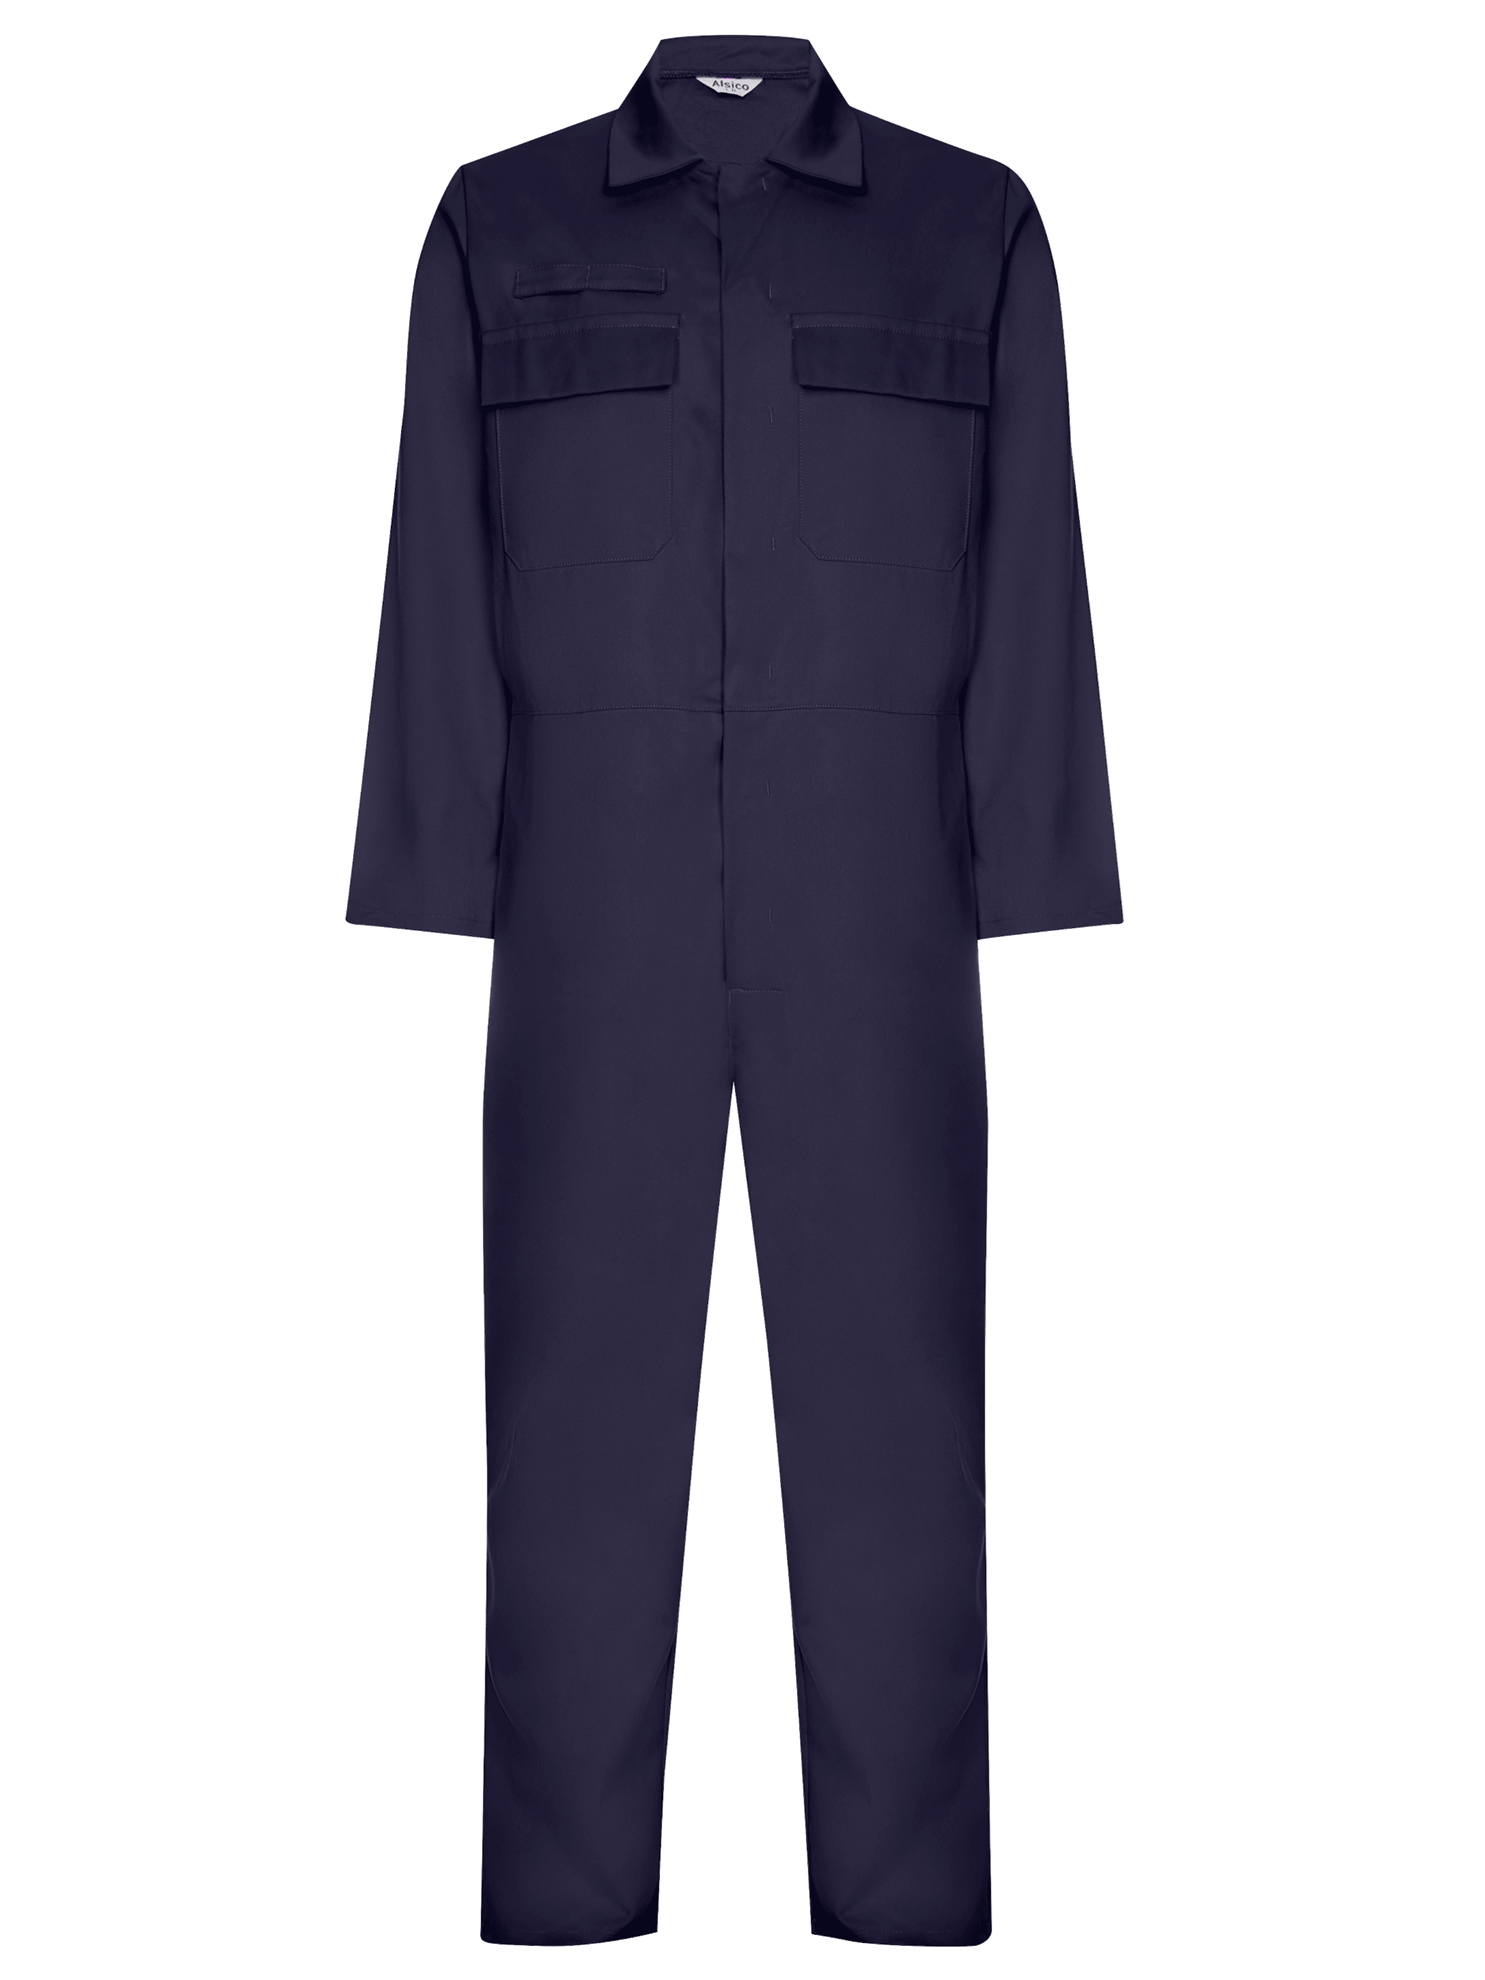 Picture of FR Coverall (Class 2 Welding) - Navy